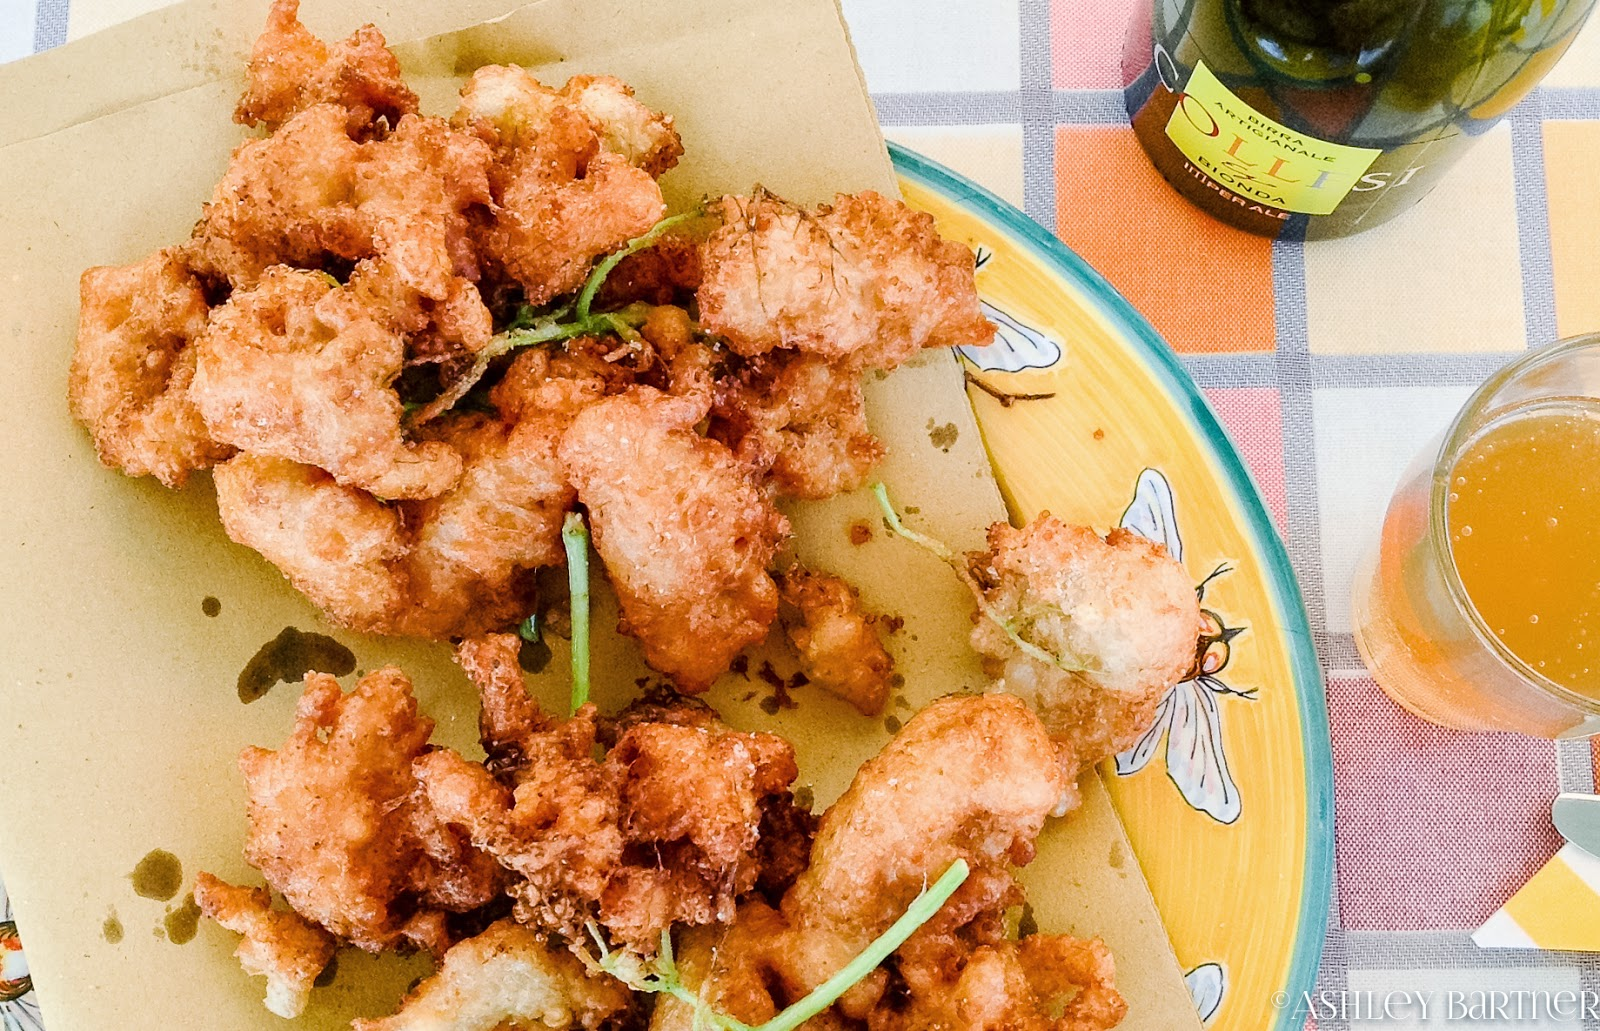 fried elderflowers & squash blossoms in beer batter: light, crispy ...